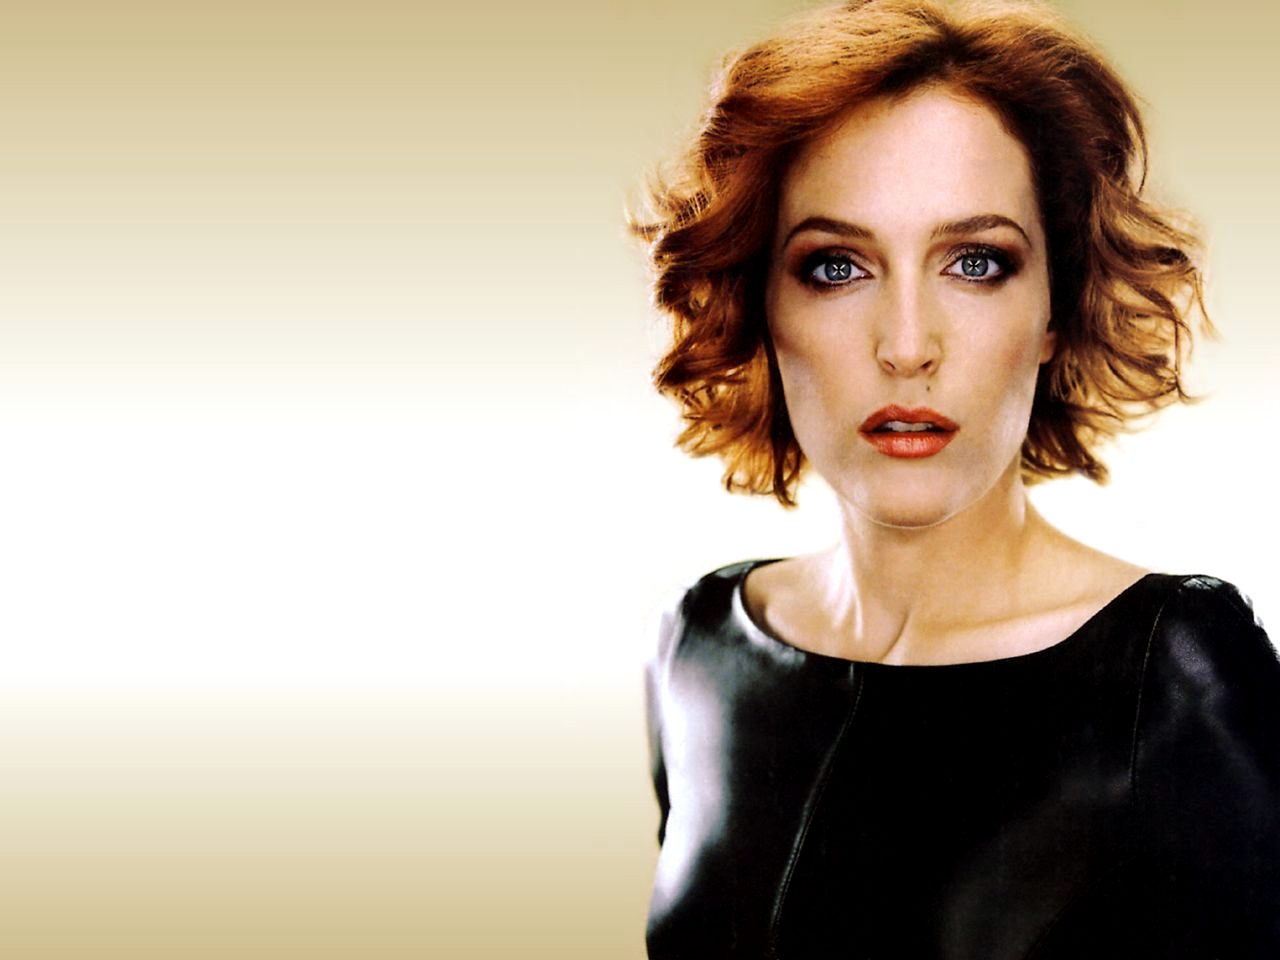 1280x960 - Gillian Anderson Wallpapers 12